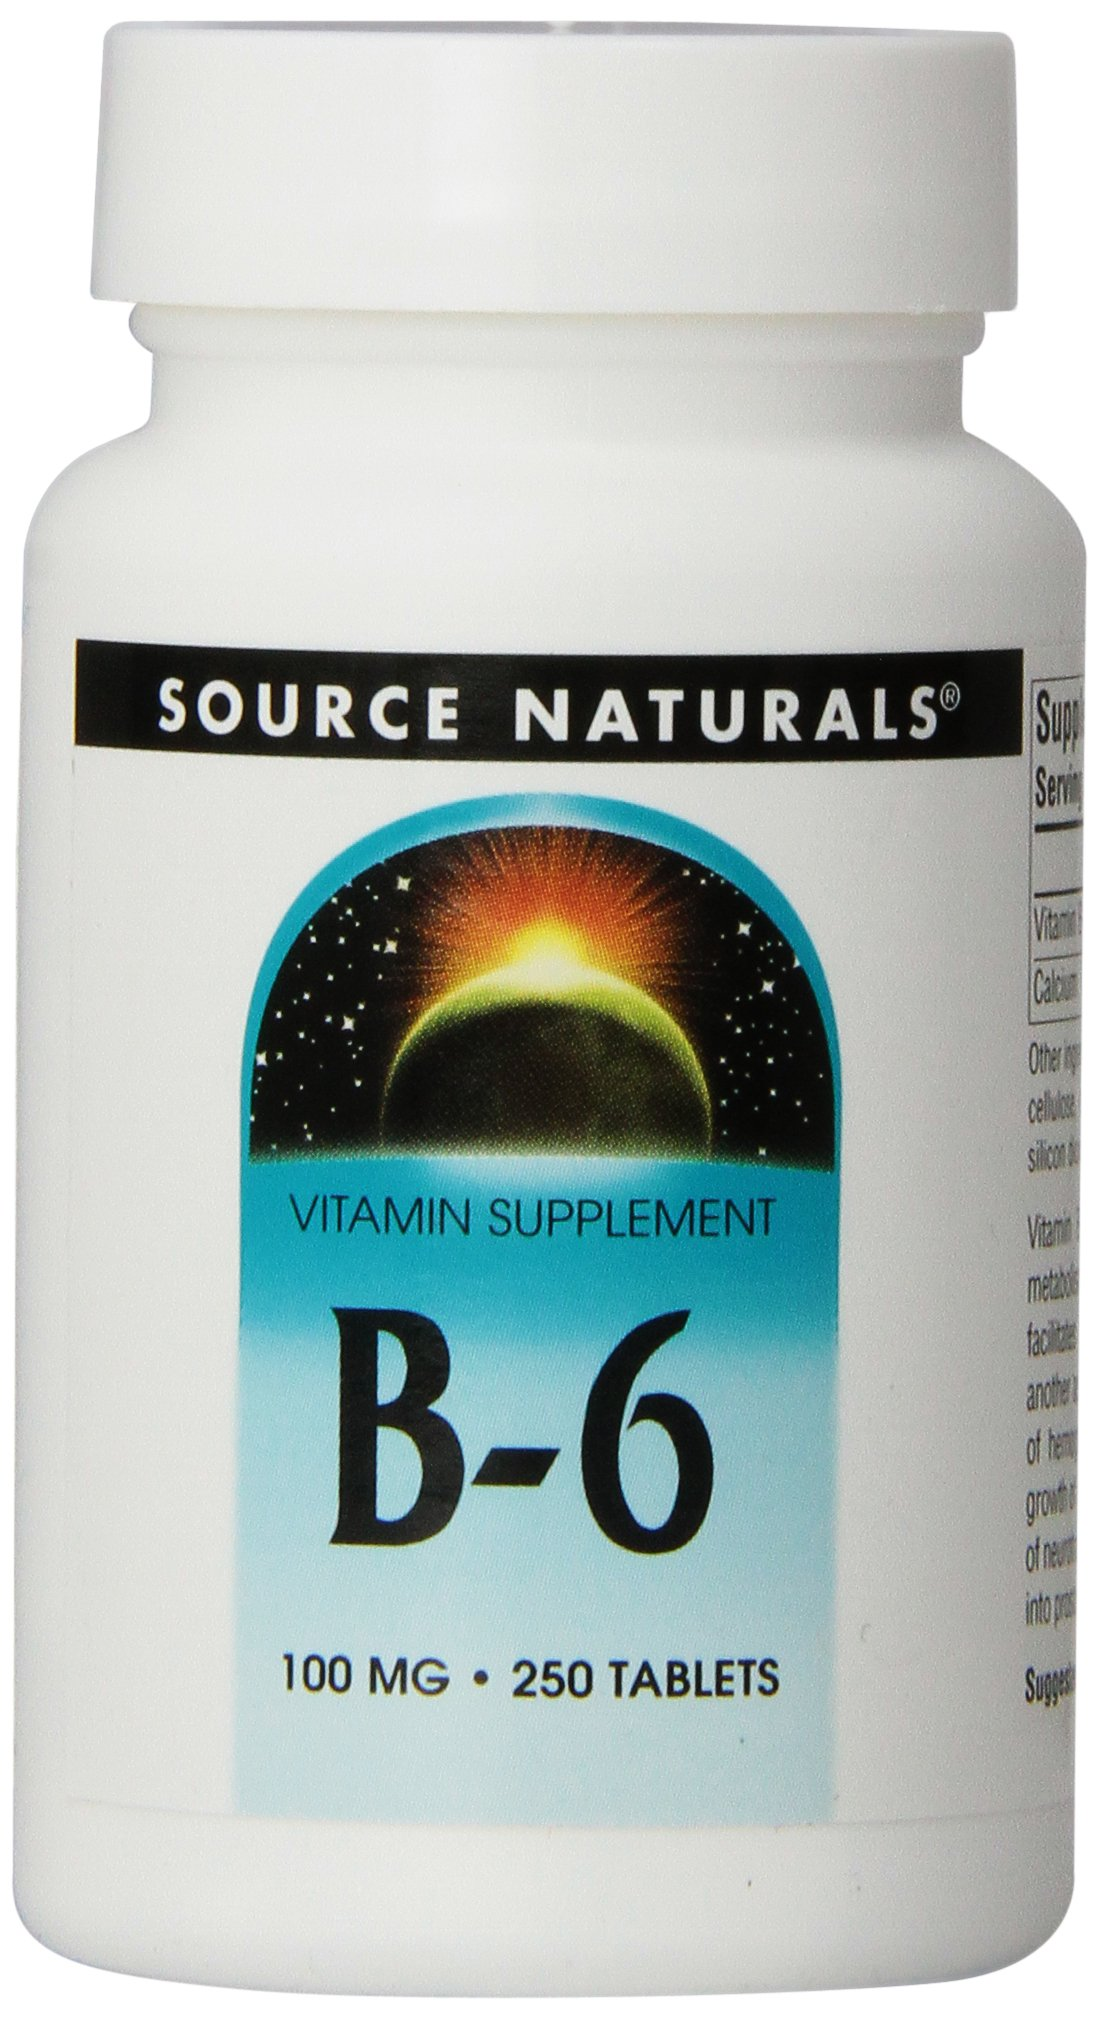 Source Naturals Vitamin B-6 100mg, Immune System Support, 250 Tablets (Pack of 3)